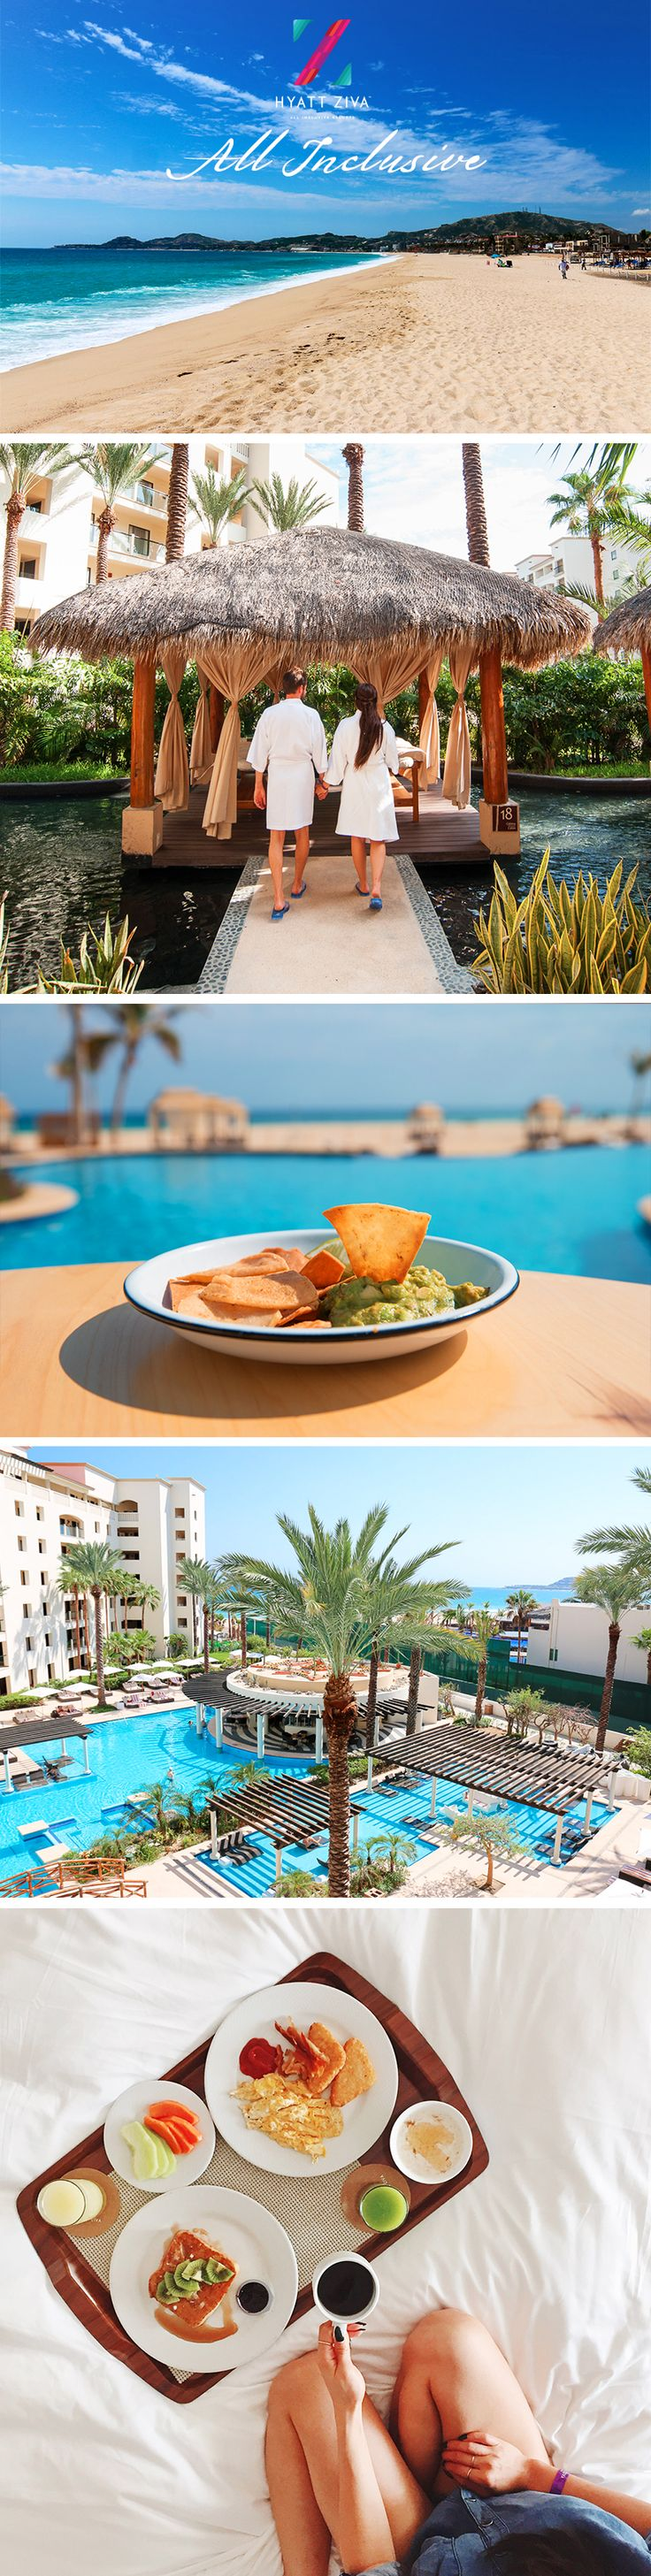 Hotel sandos cancun luxury experience resort marf travel vacation - Grab Your Family And Friends And Escape To An All Inclusive Mexican Getaway In Paradise